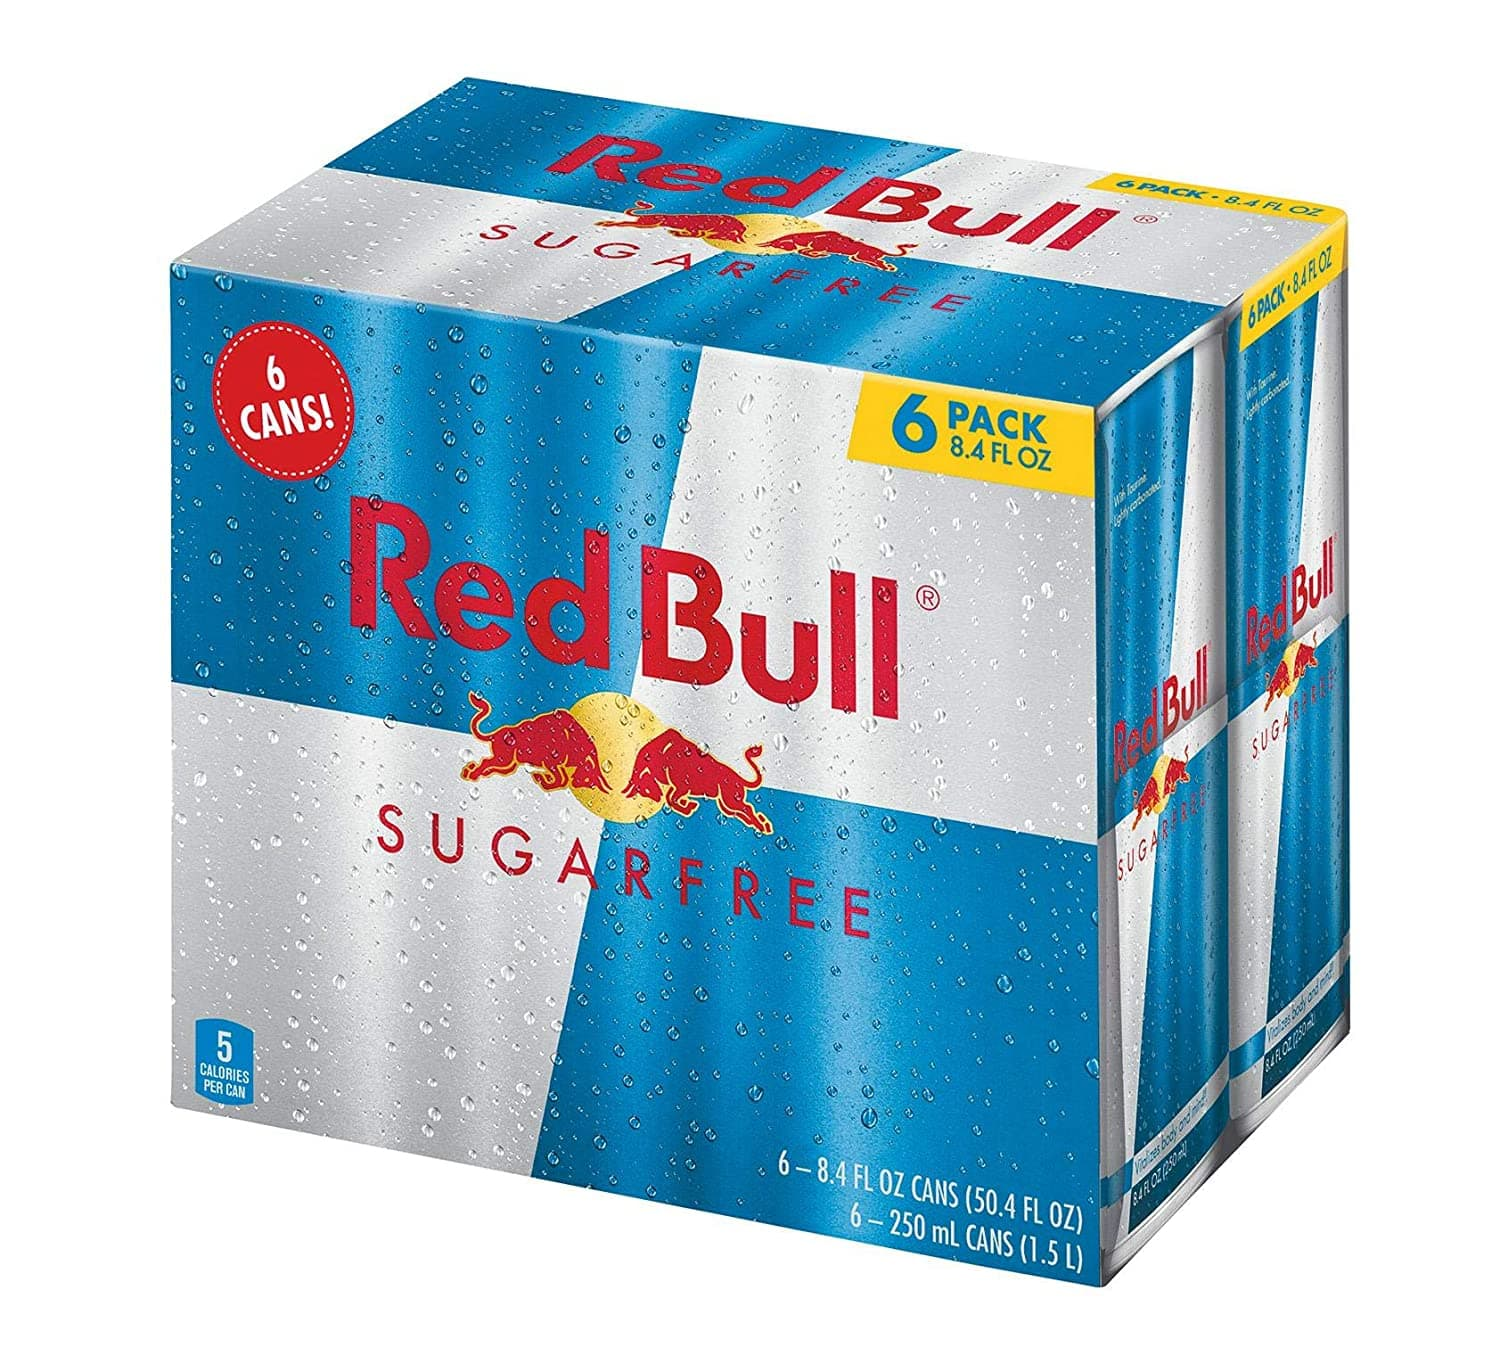 6-Pack of 8.4oz Red Bull Sugar Free Energy Drink $6.26 w/ S&S + Free S&H w/ Prime or orders $25+ ~ Amazon